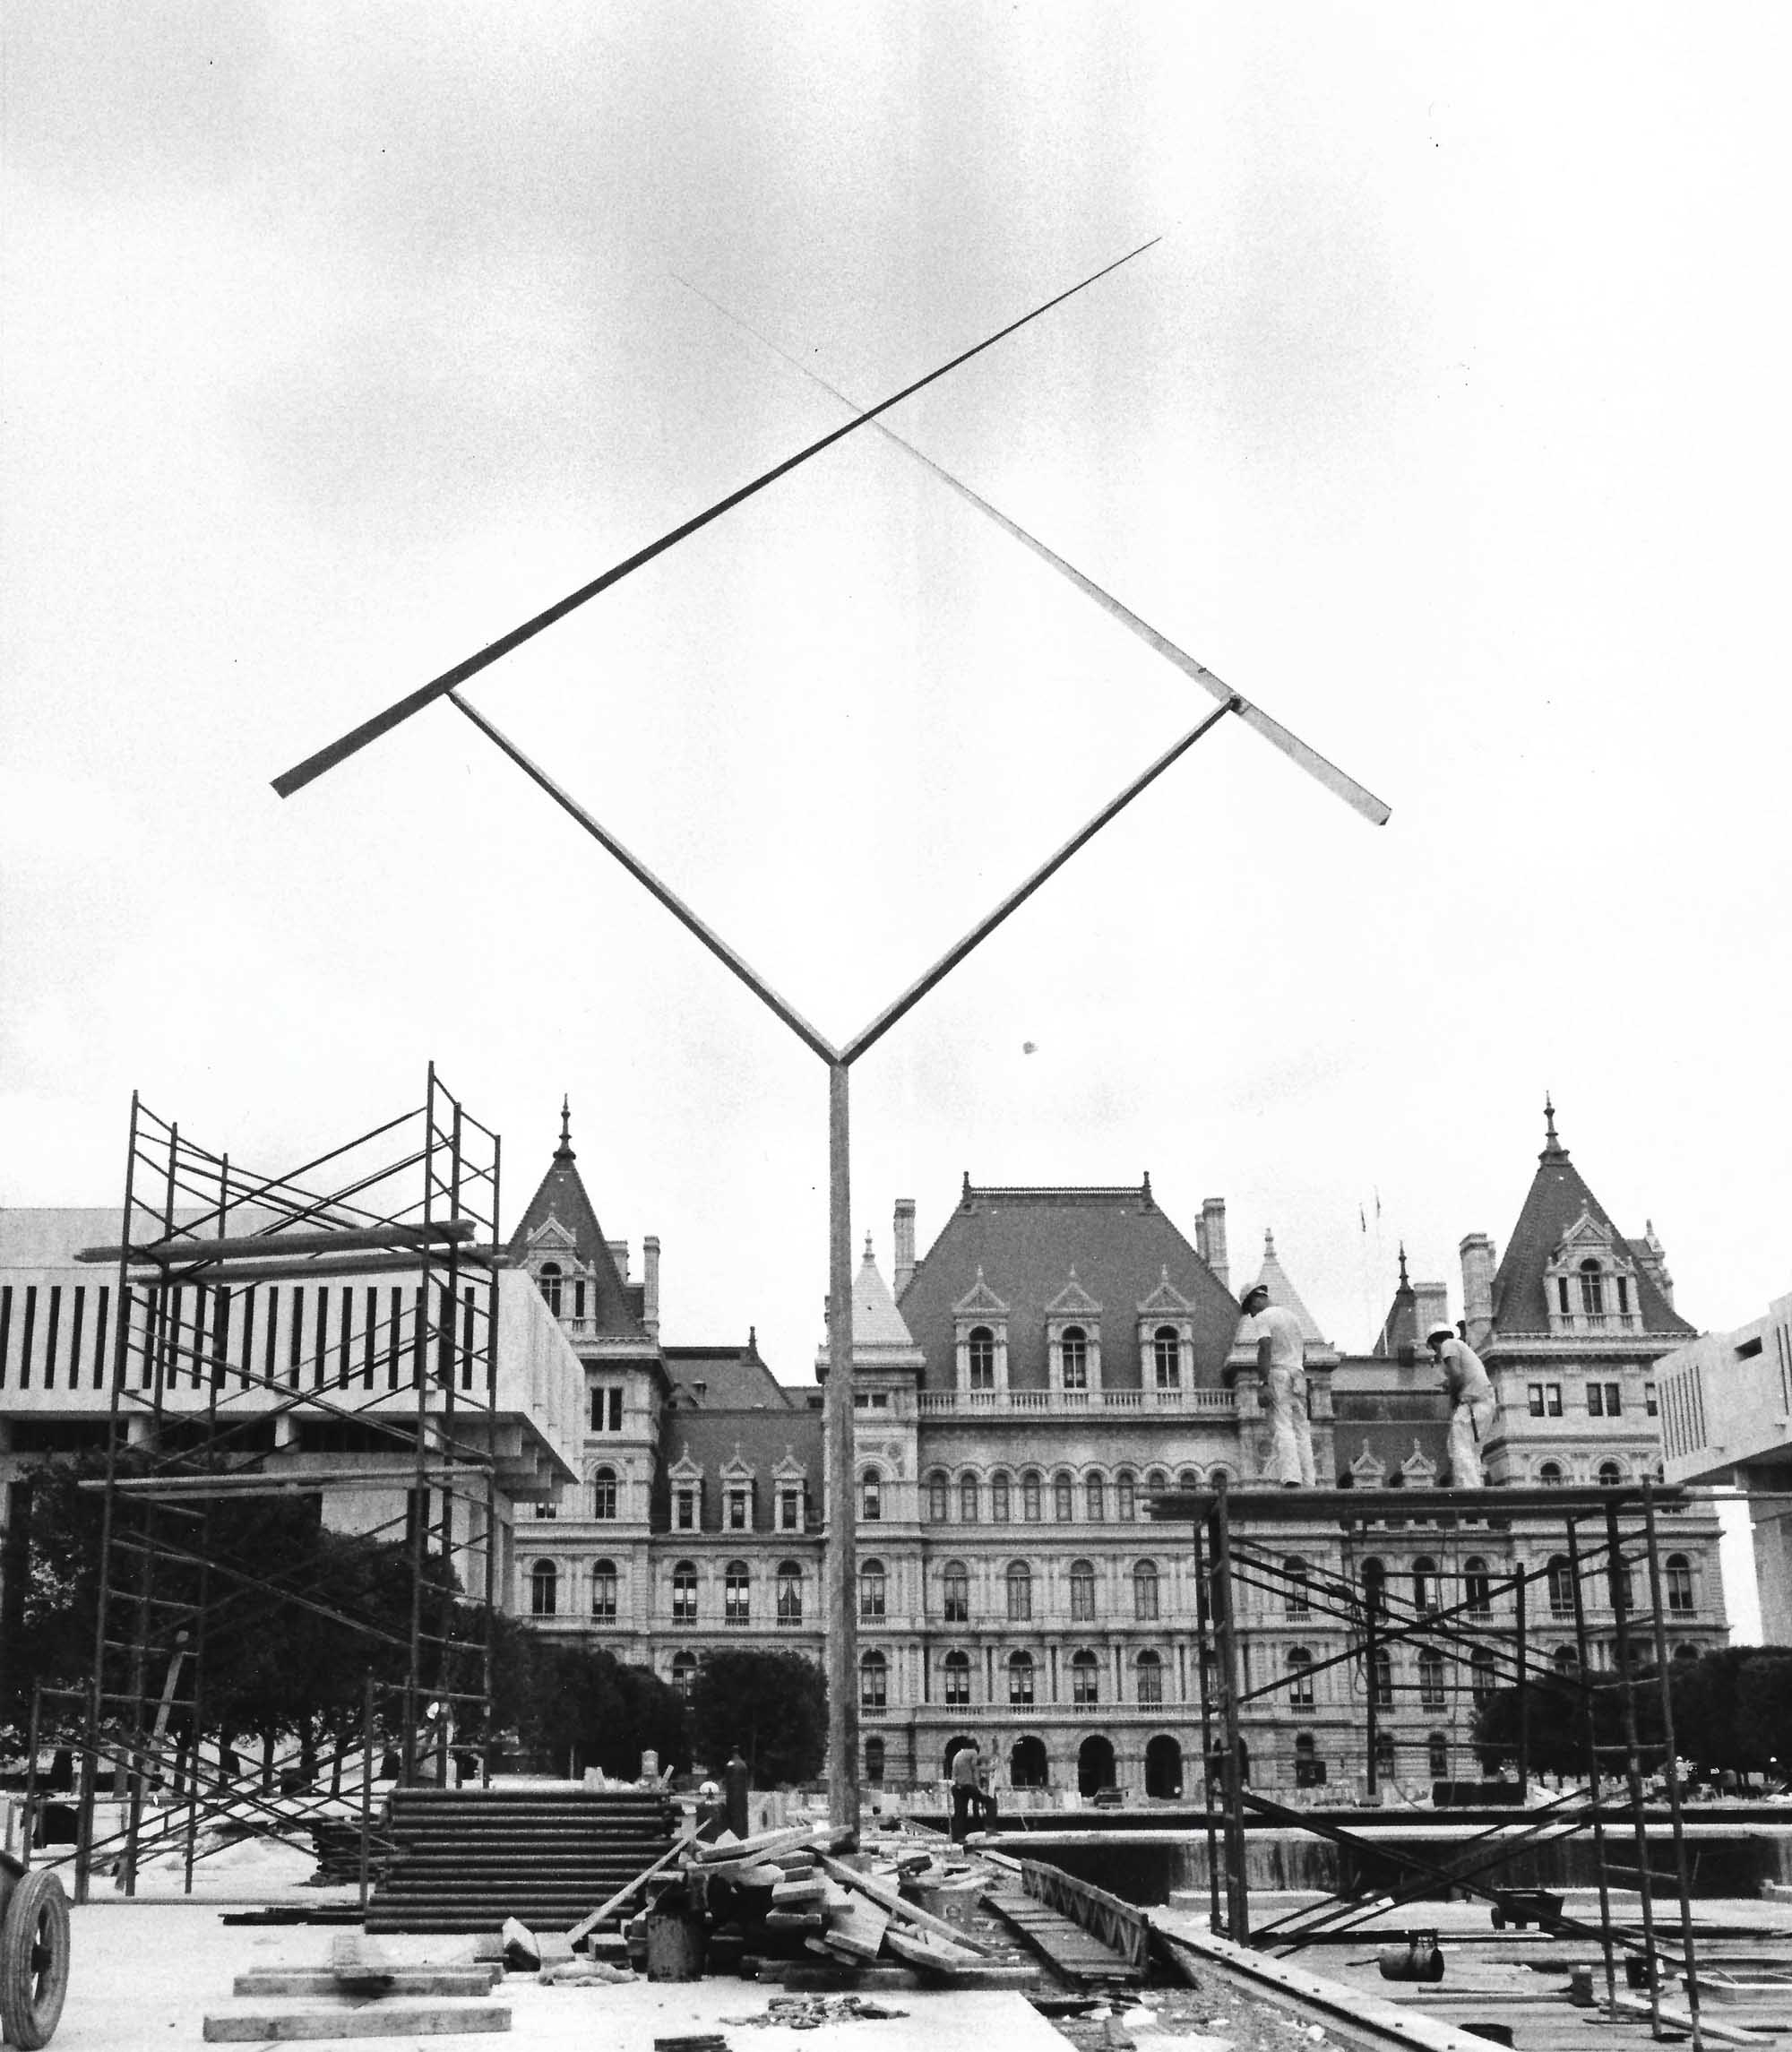 Two Lines Oblique (1971, stainless steel), Empire State Plaza, Albany, NY. Estate of George Rickey/George Rickey Foundation.